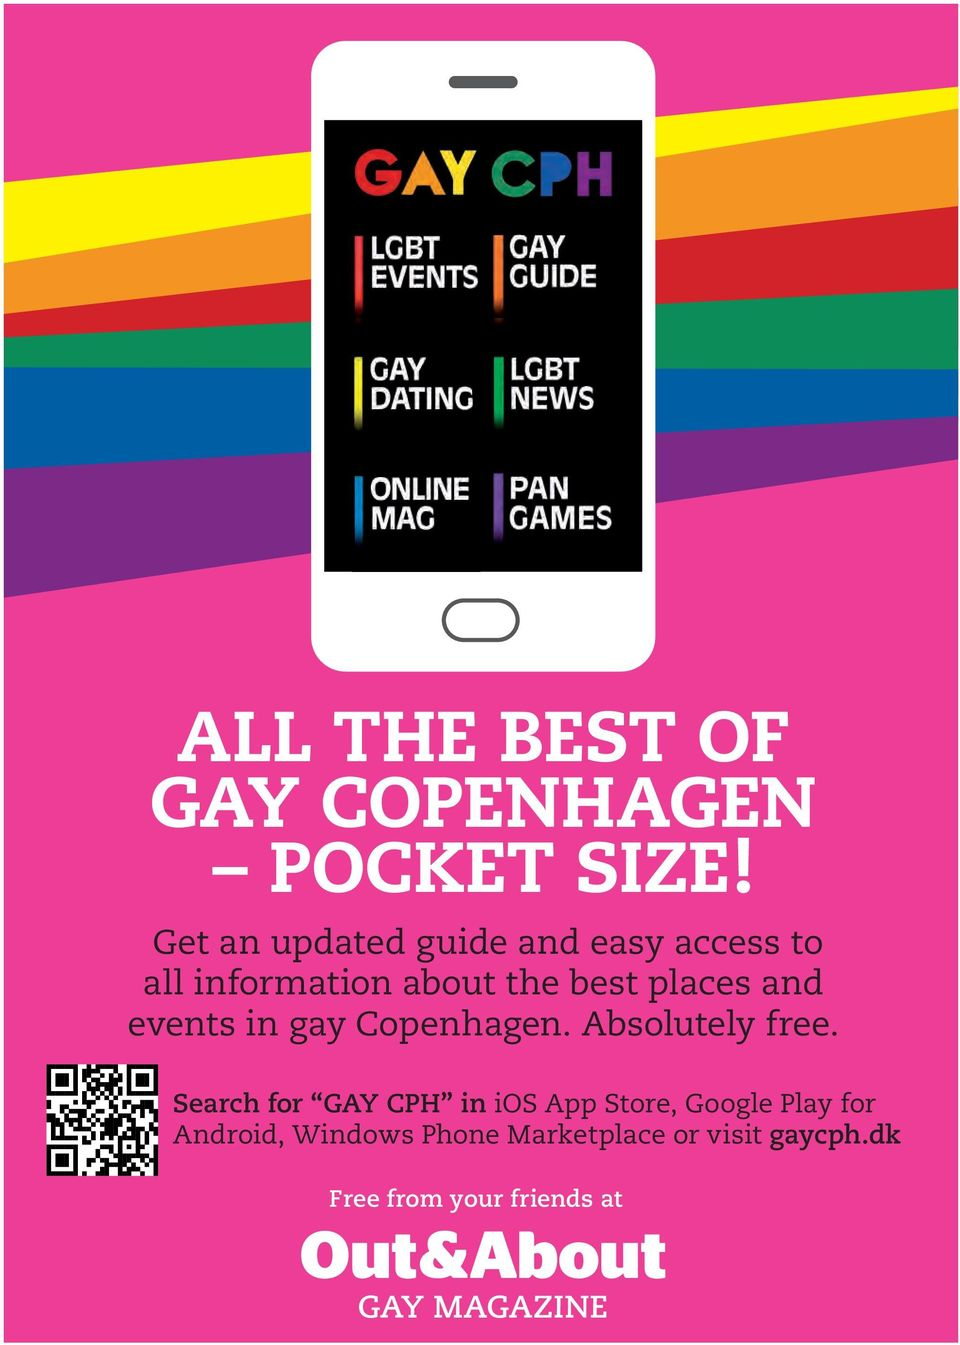 and events in gay Copenhagen. Absolutely free.